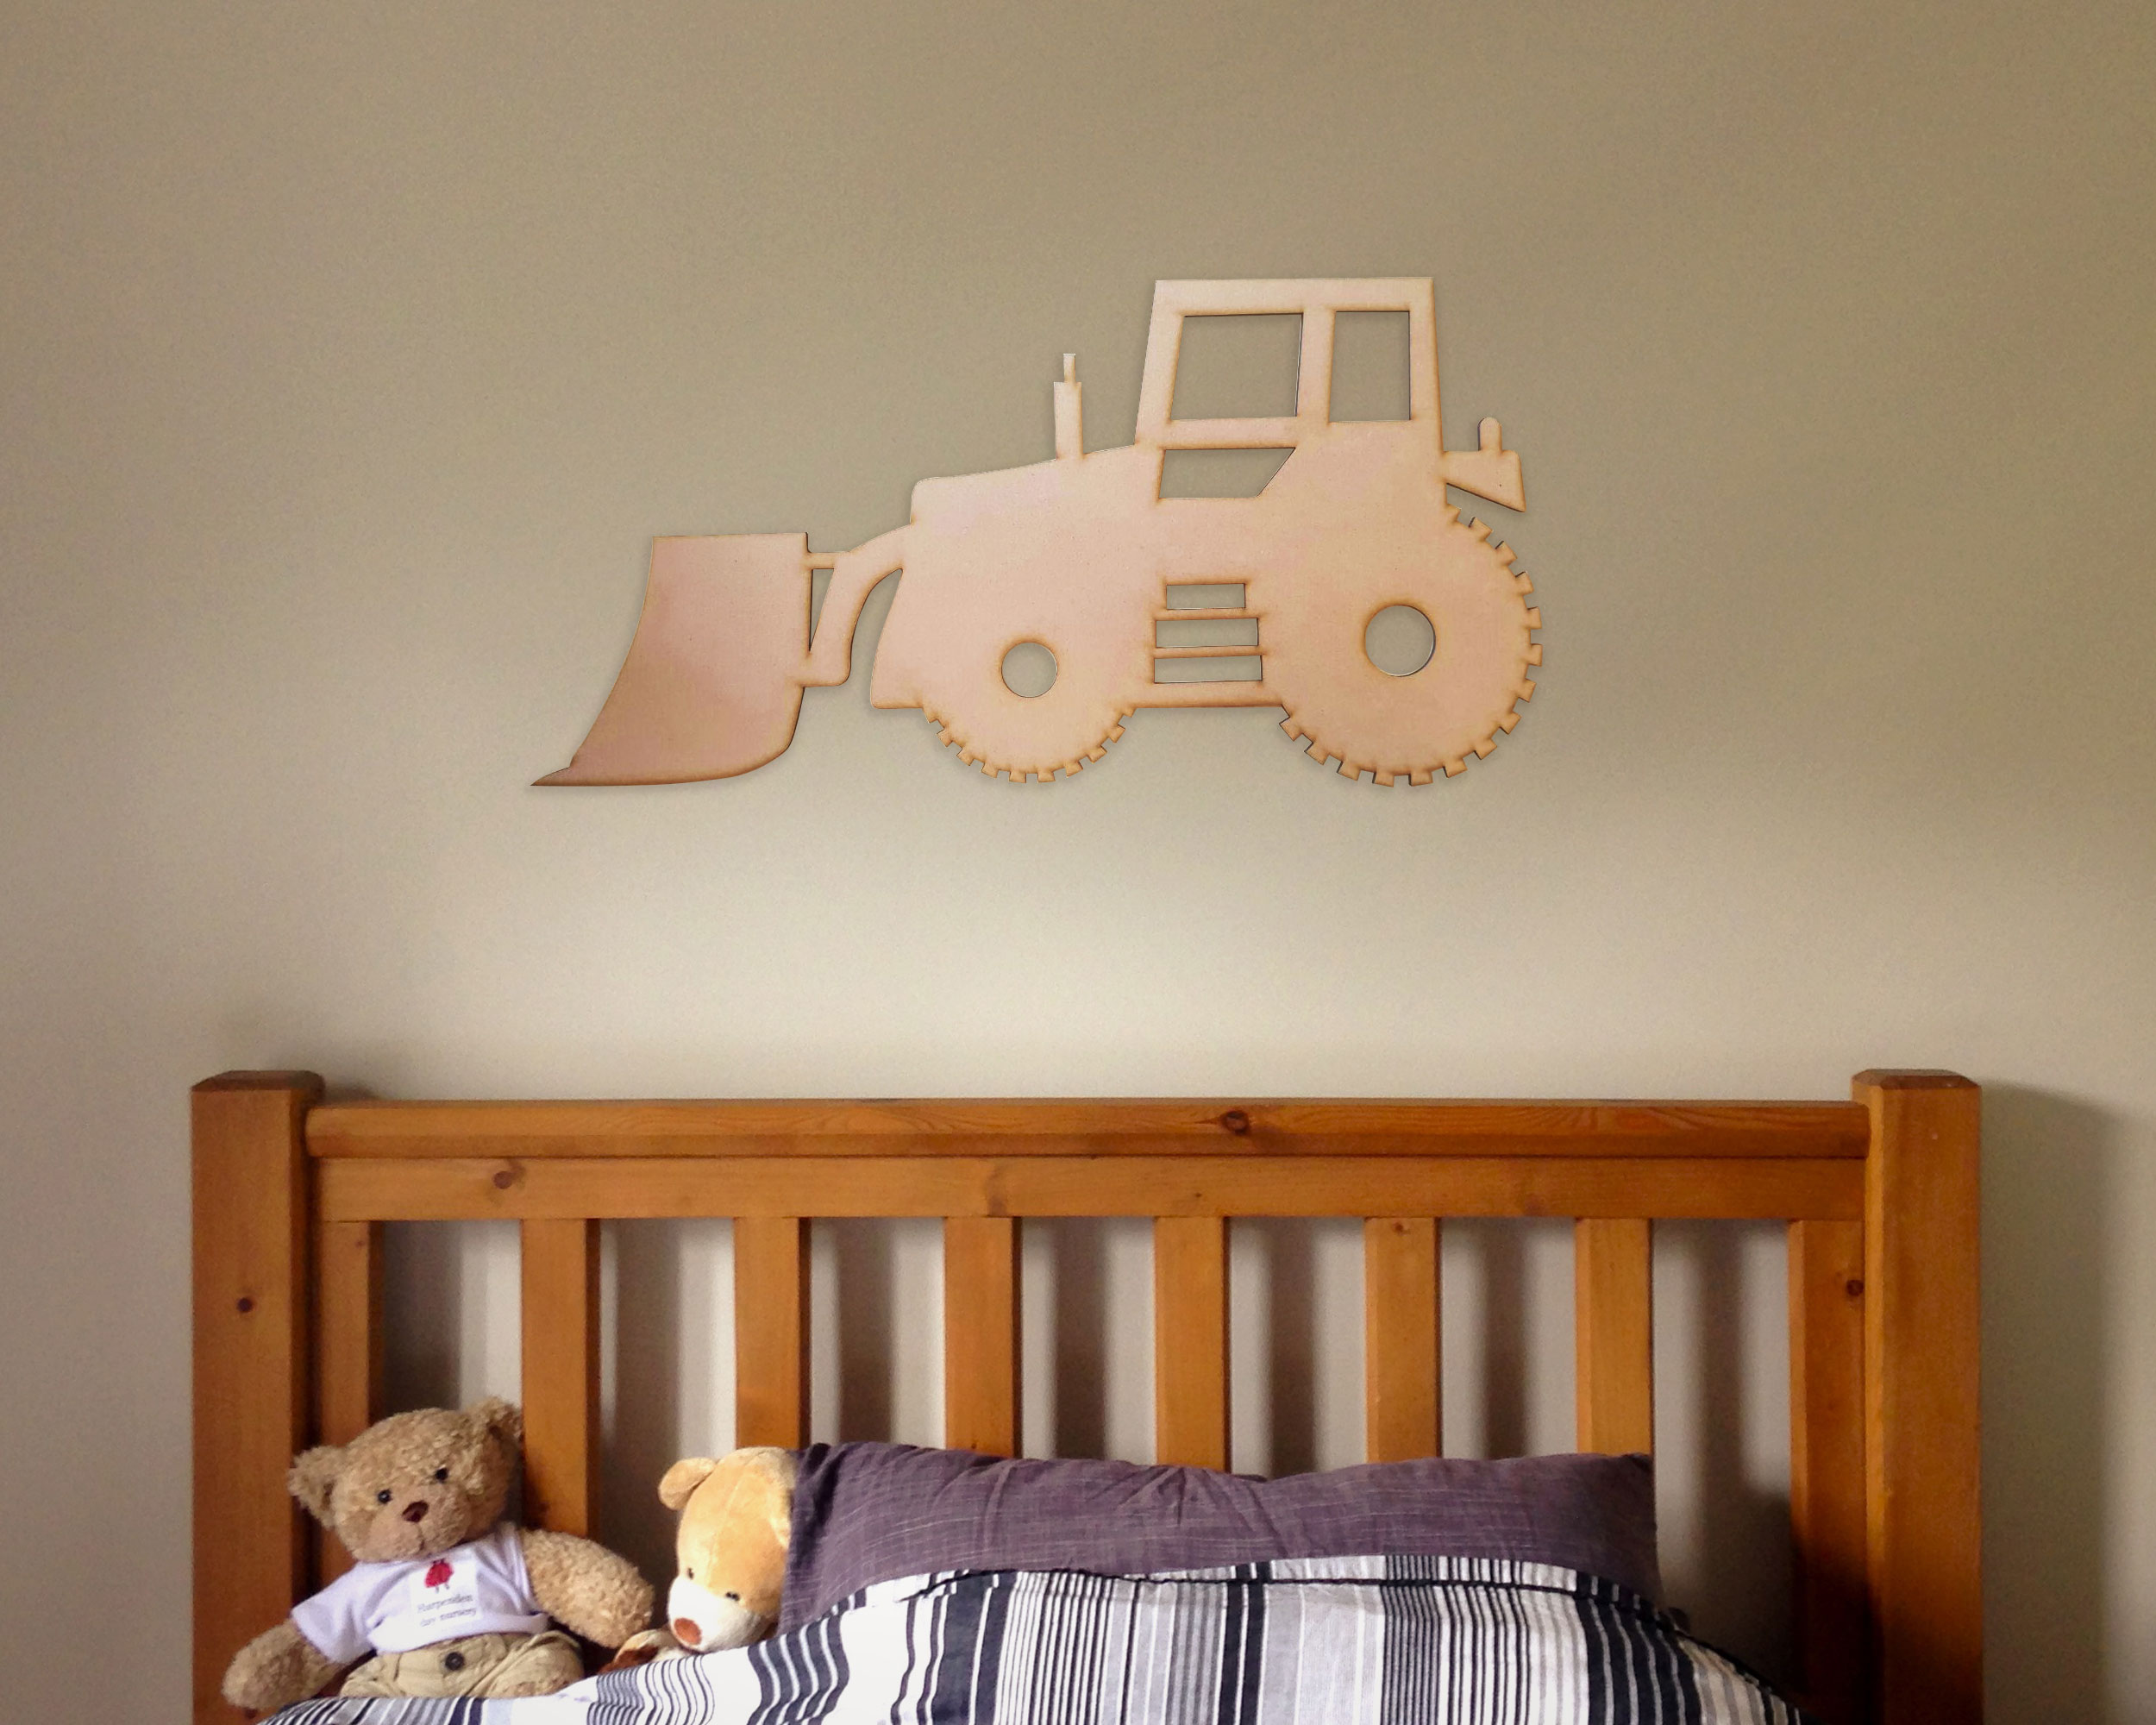 Kids Tractor Wall Decor 60cm The Laser Company